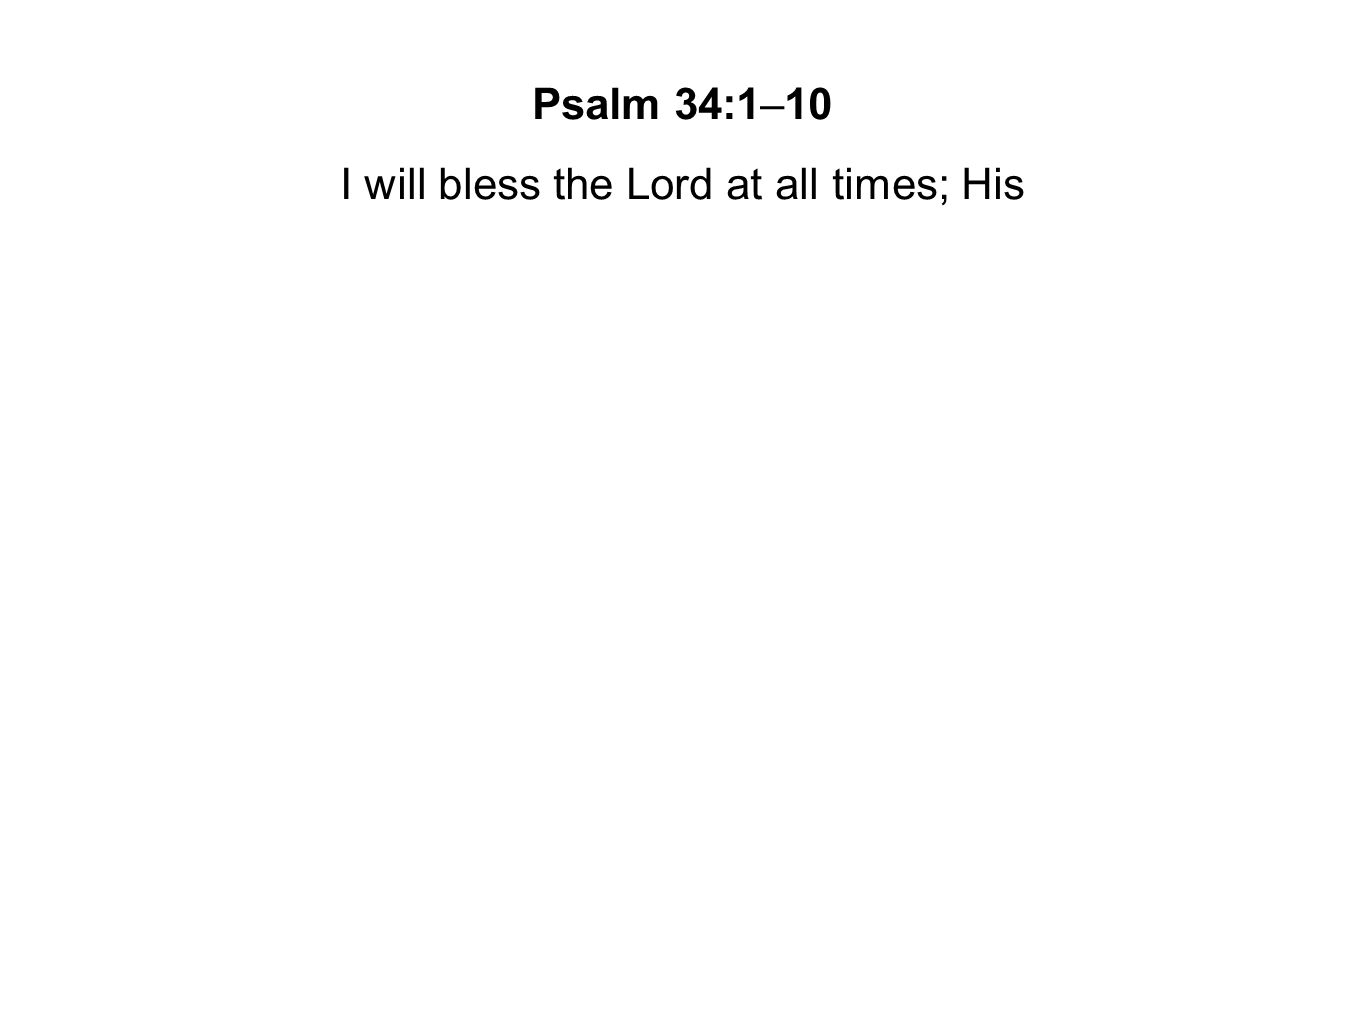 I will bless the Lord at all times; His